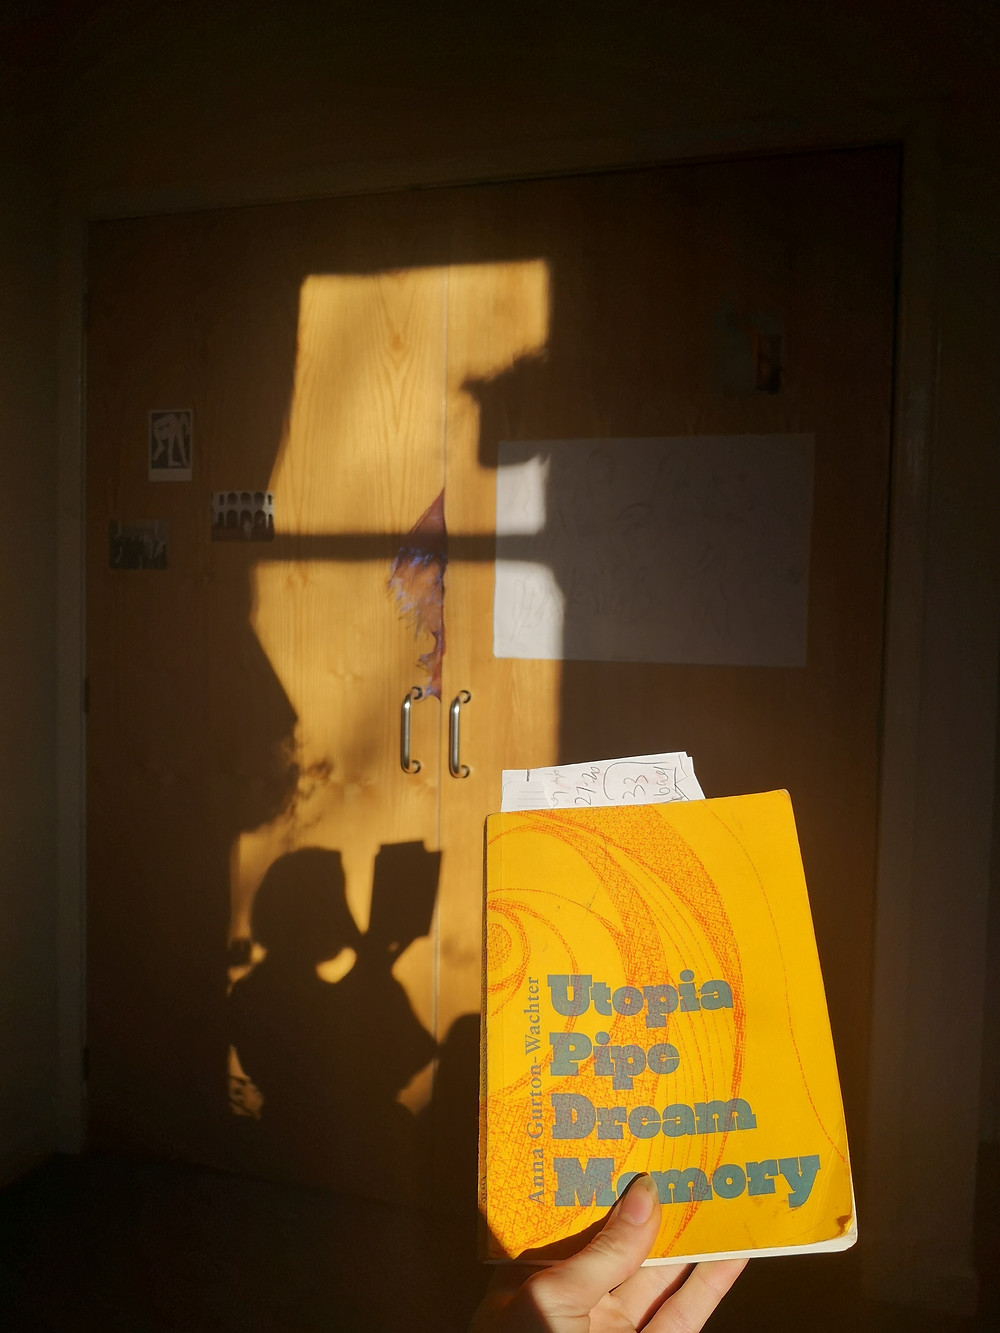 The yellow cover of the book is held against shadows a wooden wardrobe a silhouette of the person holding the image with fingers visible